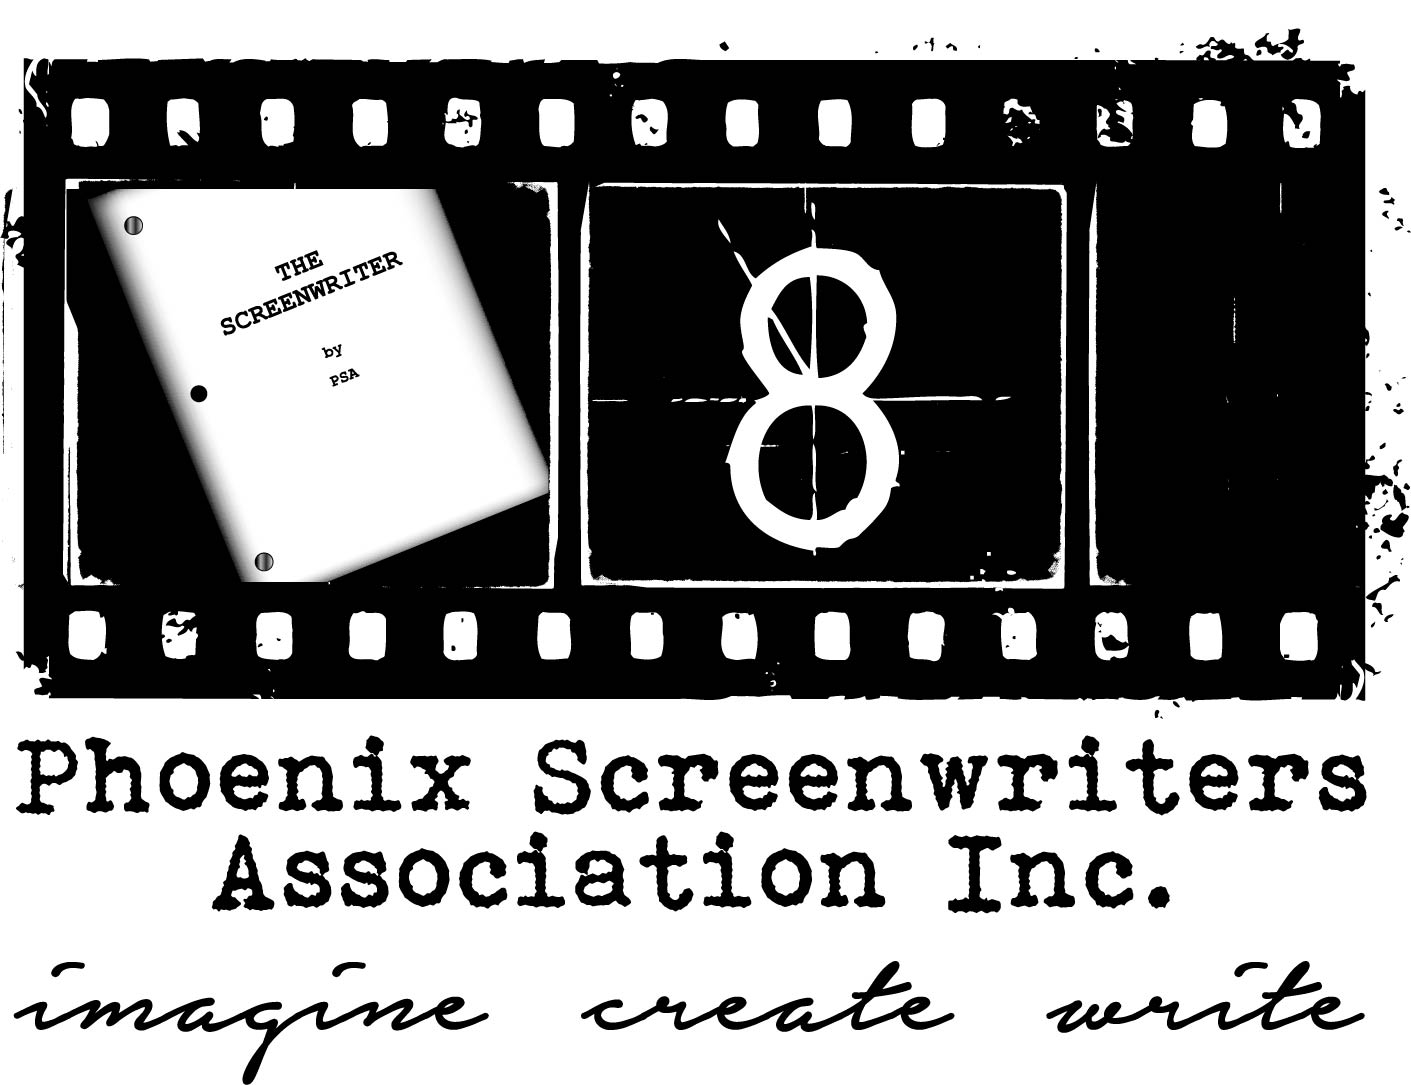 Phoenix Screenwriters Association